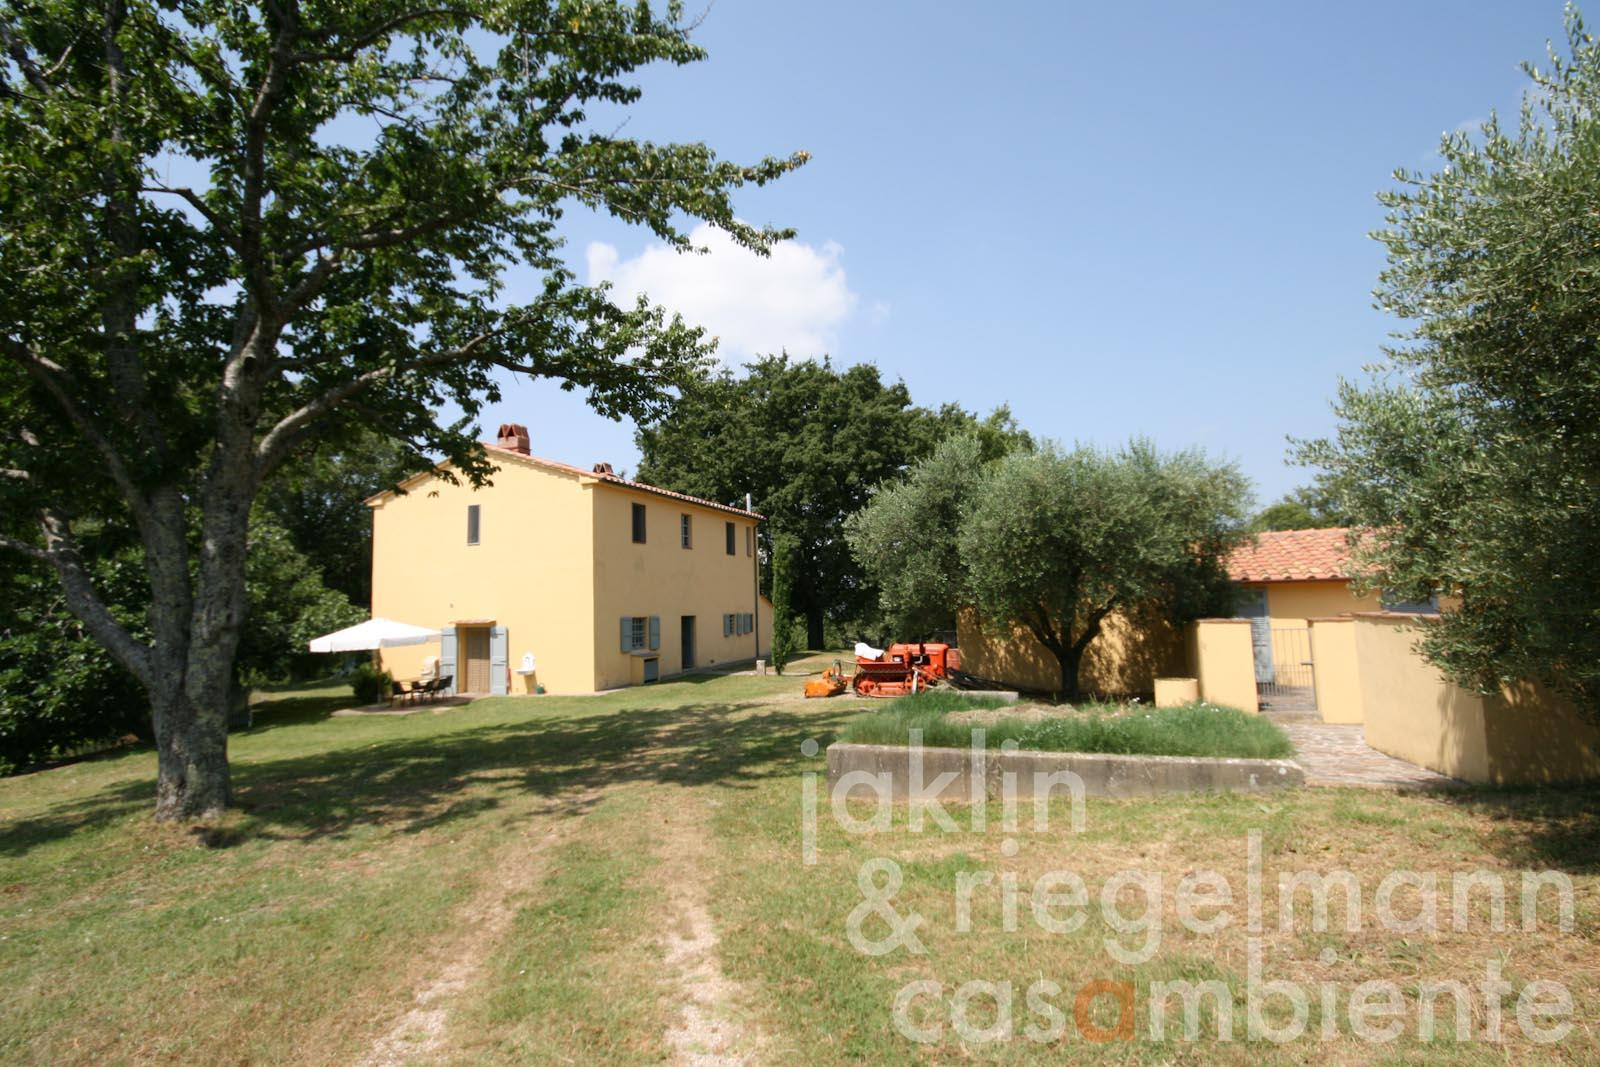 The Tuscan farmhouse for sale with annexe in a private location close to Massa Marittima